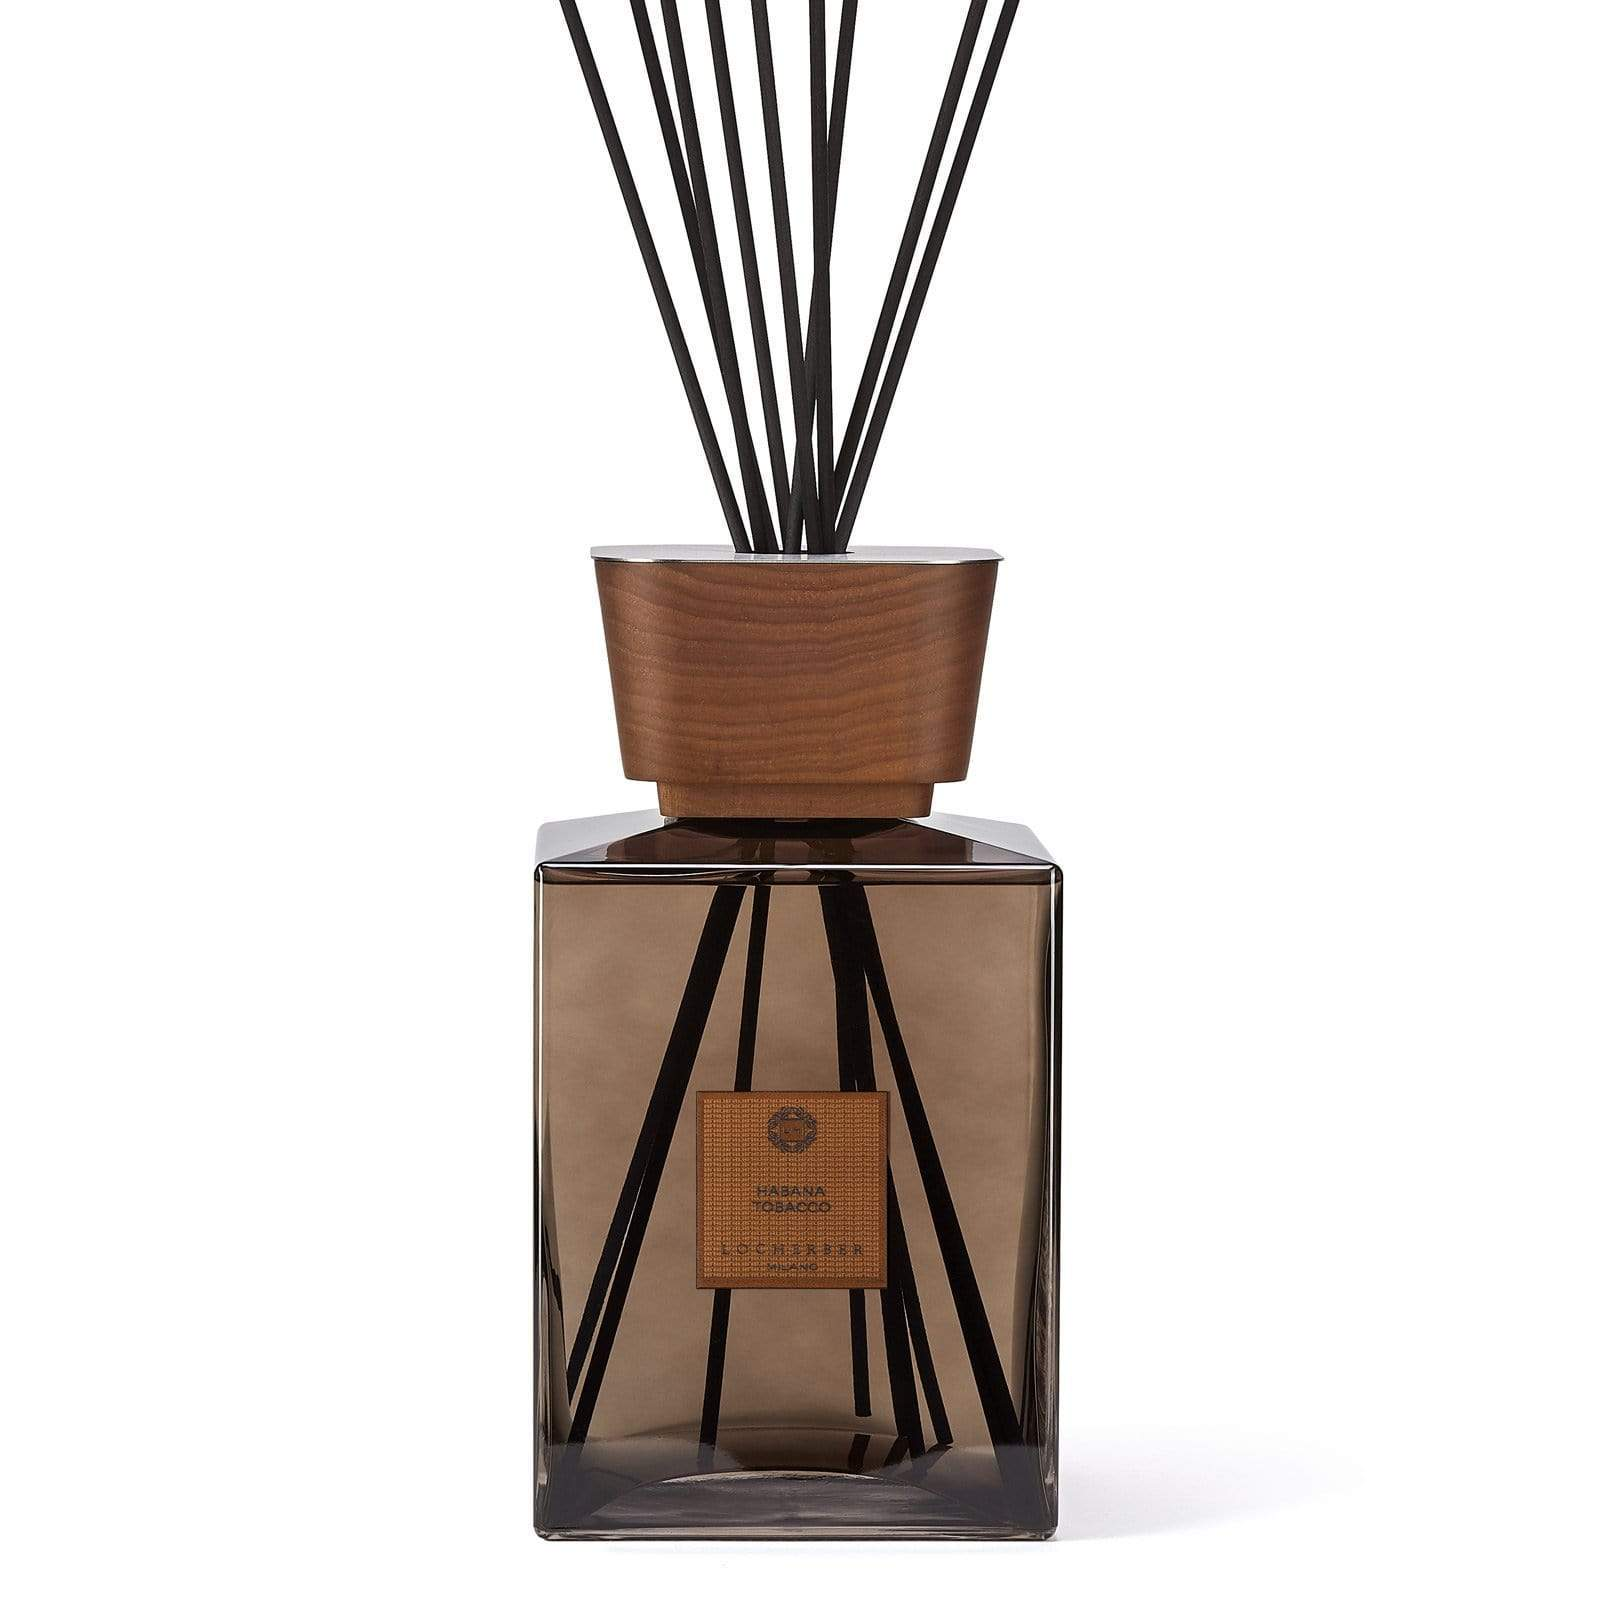 Locherber Milano Home Fragrance 5000ml Habana Tobacco Diffuser (5 Sizes)